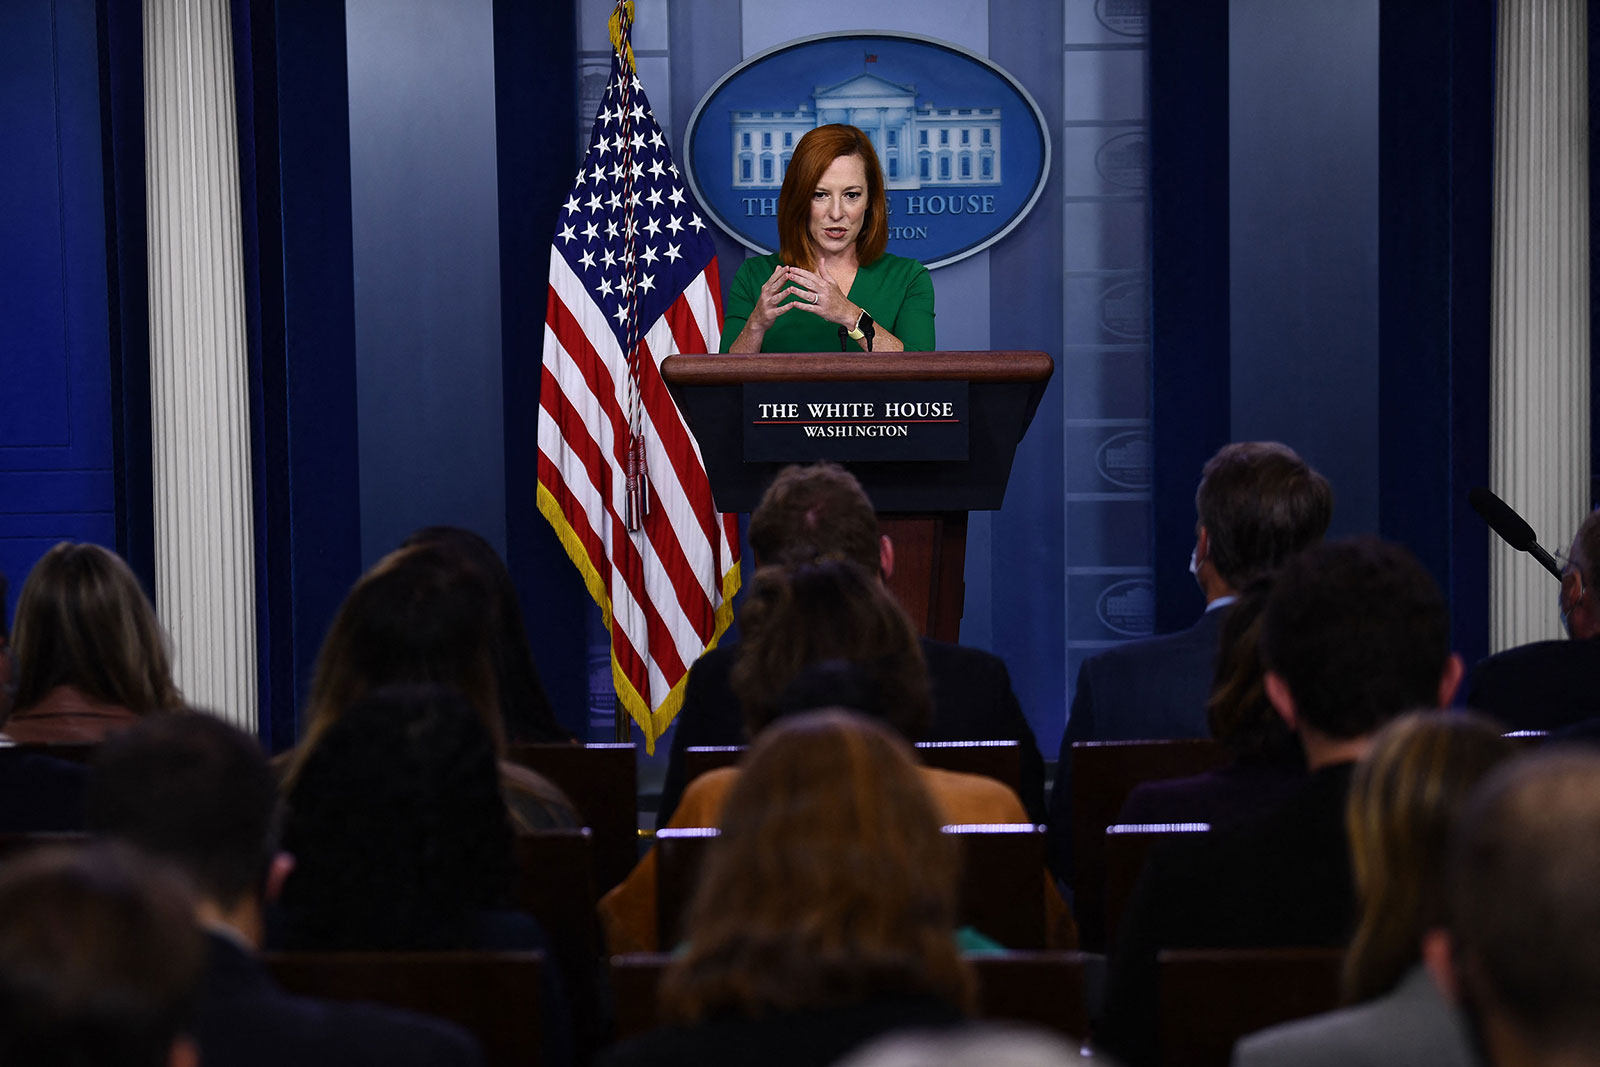 White House press secretary Jen Psaki answers questions during a press briefing on September 29.